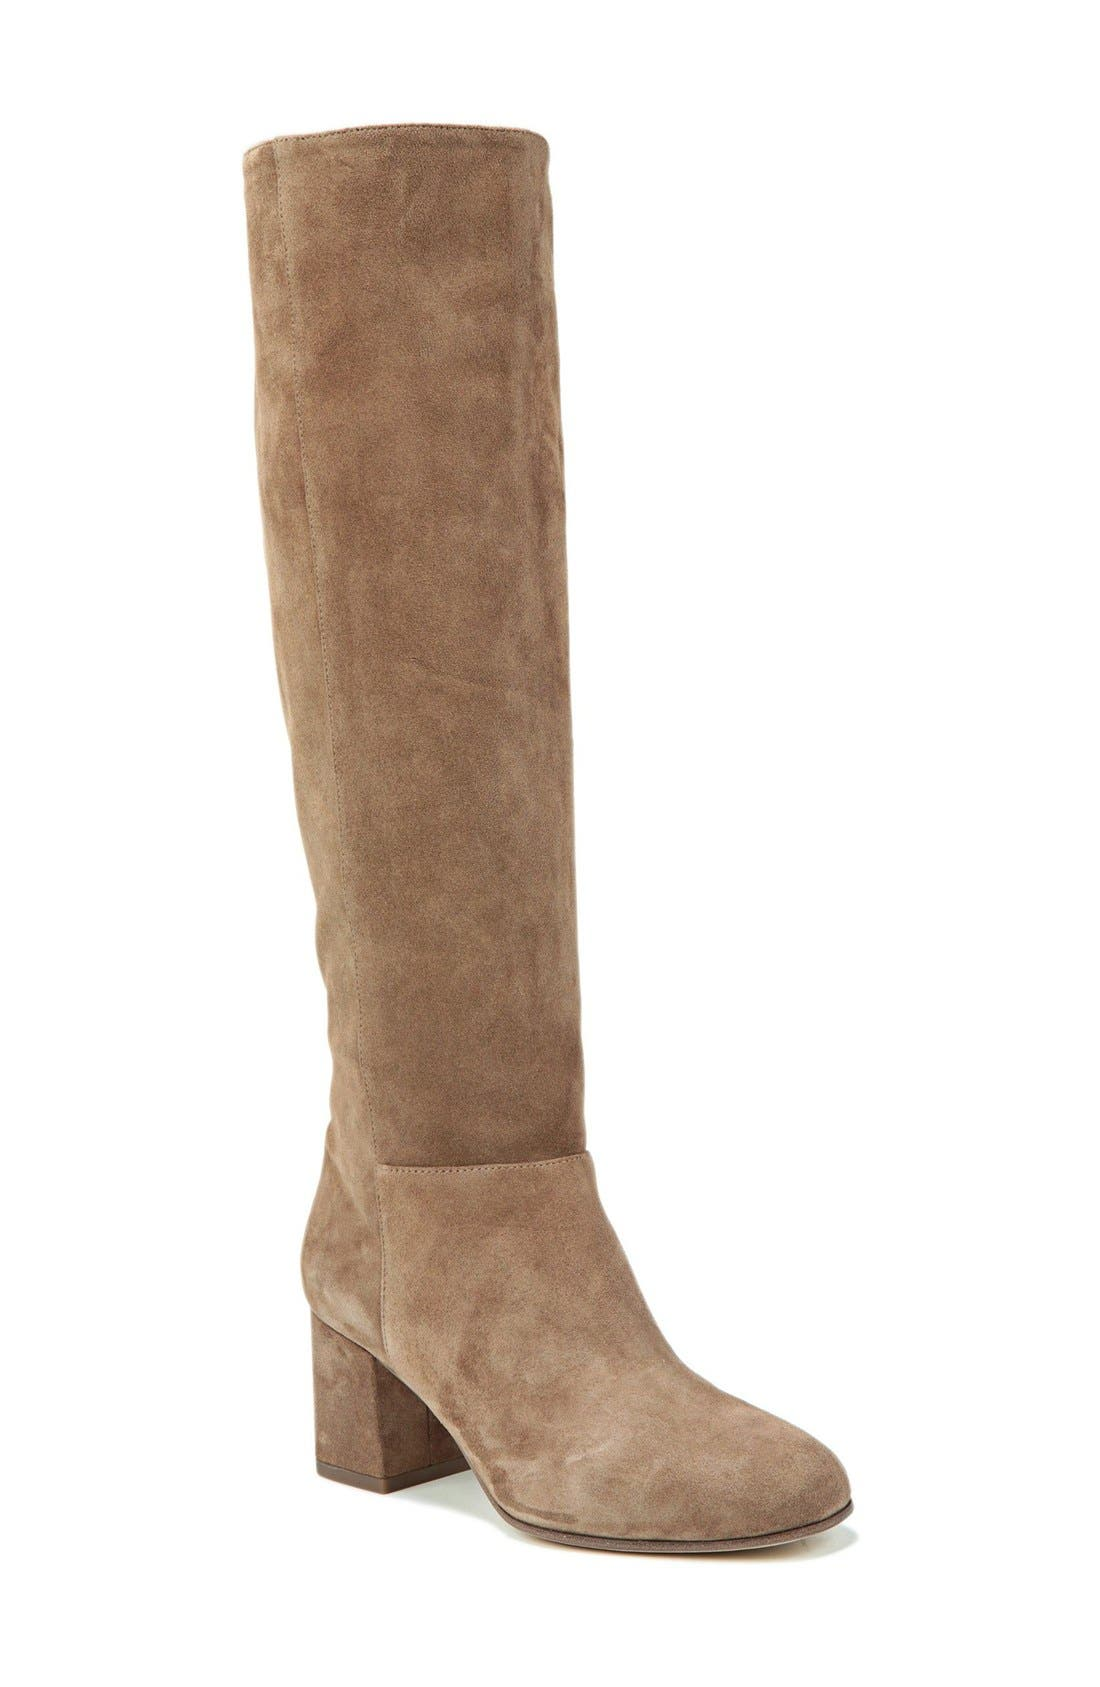 Alternate Image 1 Selected - Via Spiga Mellie Knee High Boot (Women)